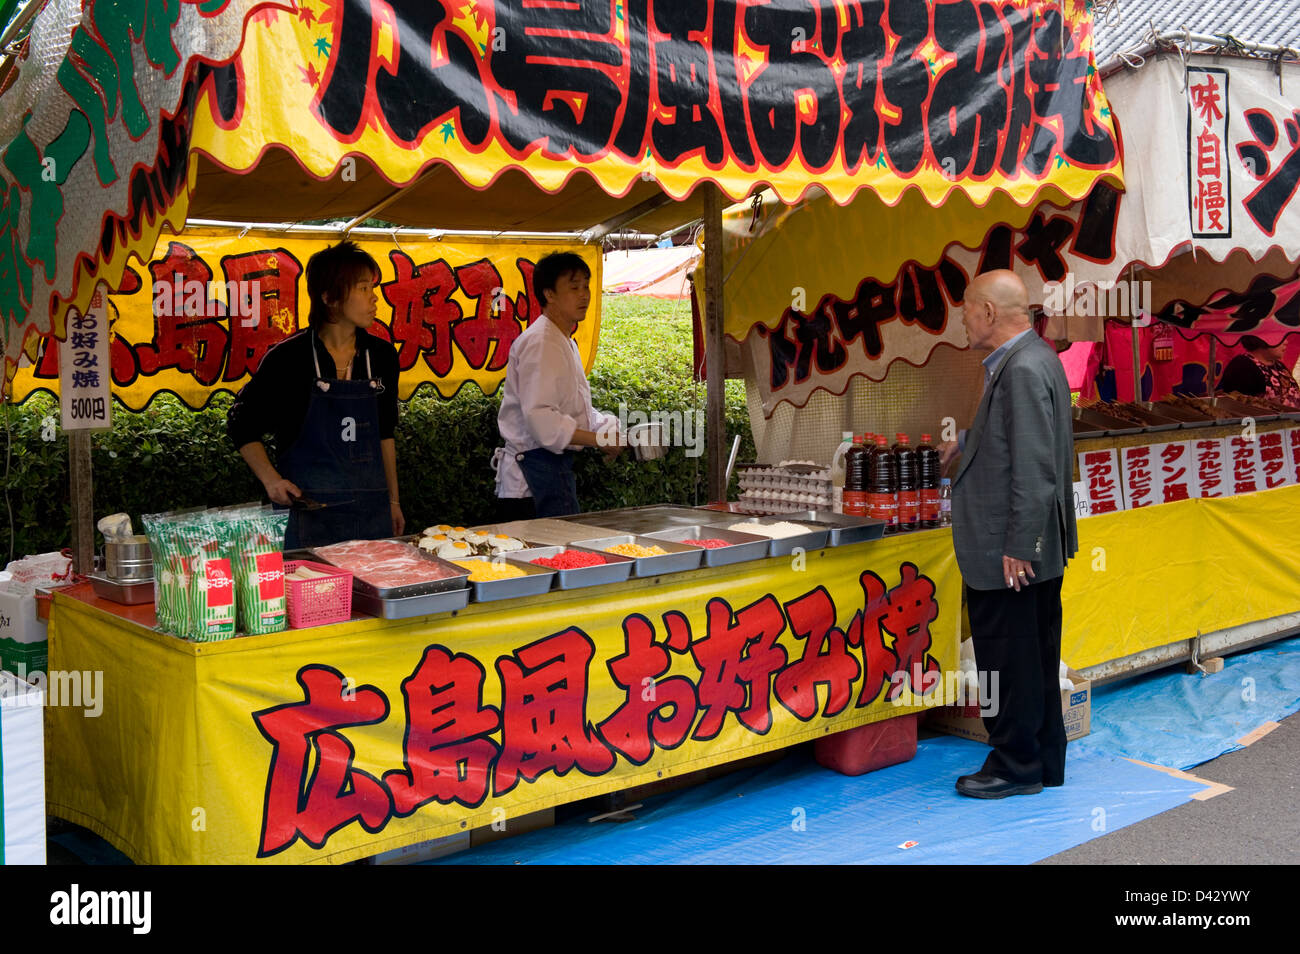 Roten stand is selling famous Hiroshima okonomiyaki, a Japanese pizza with cabbage, meat and eggs, at a festival - Stock Image